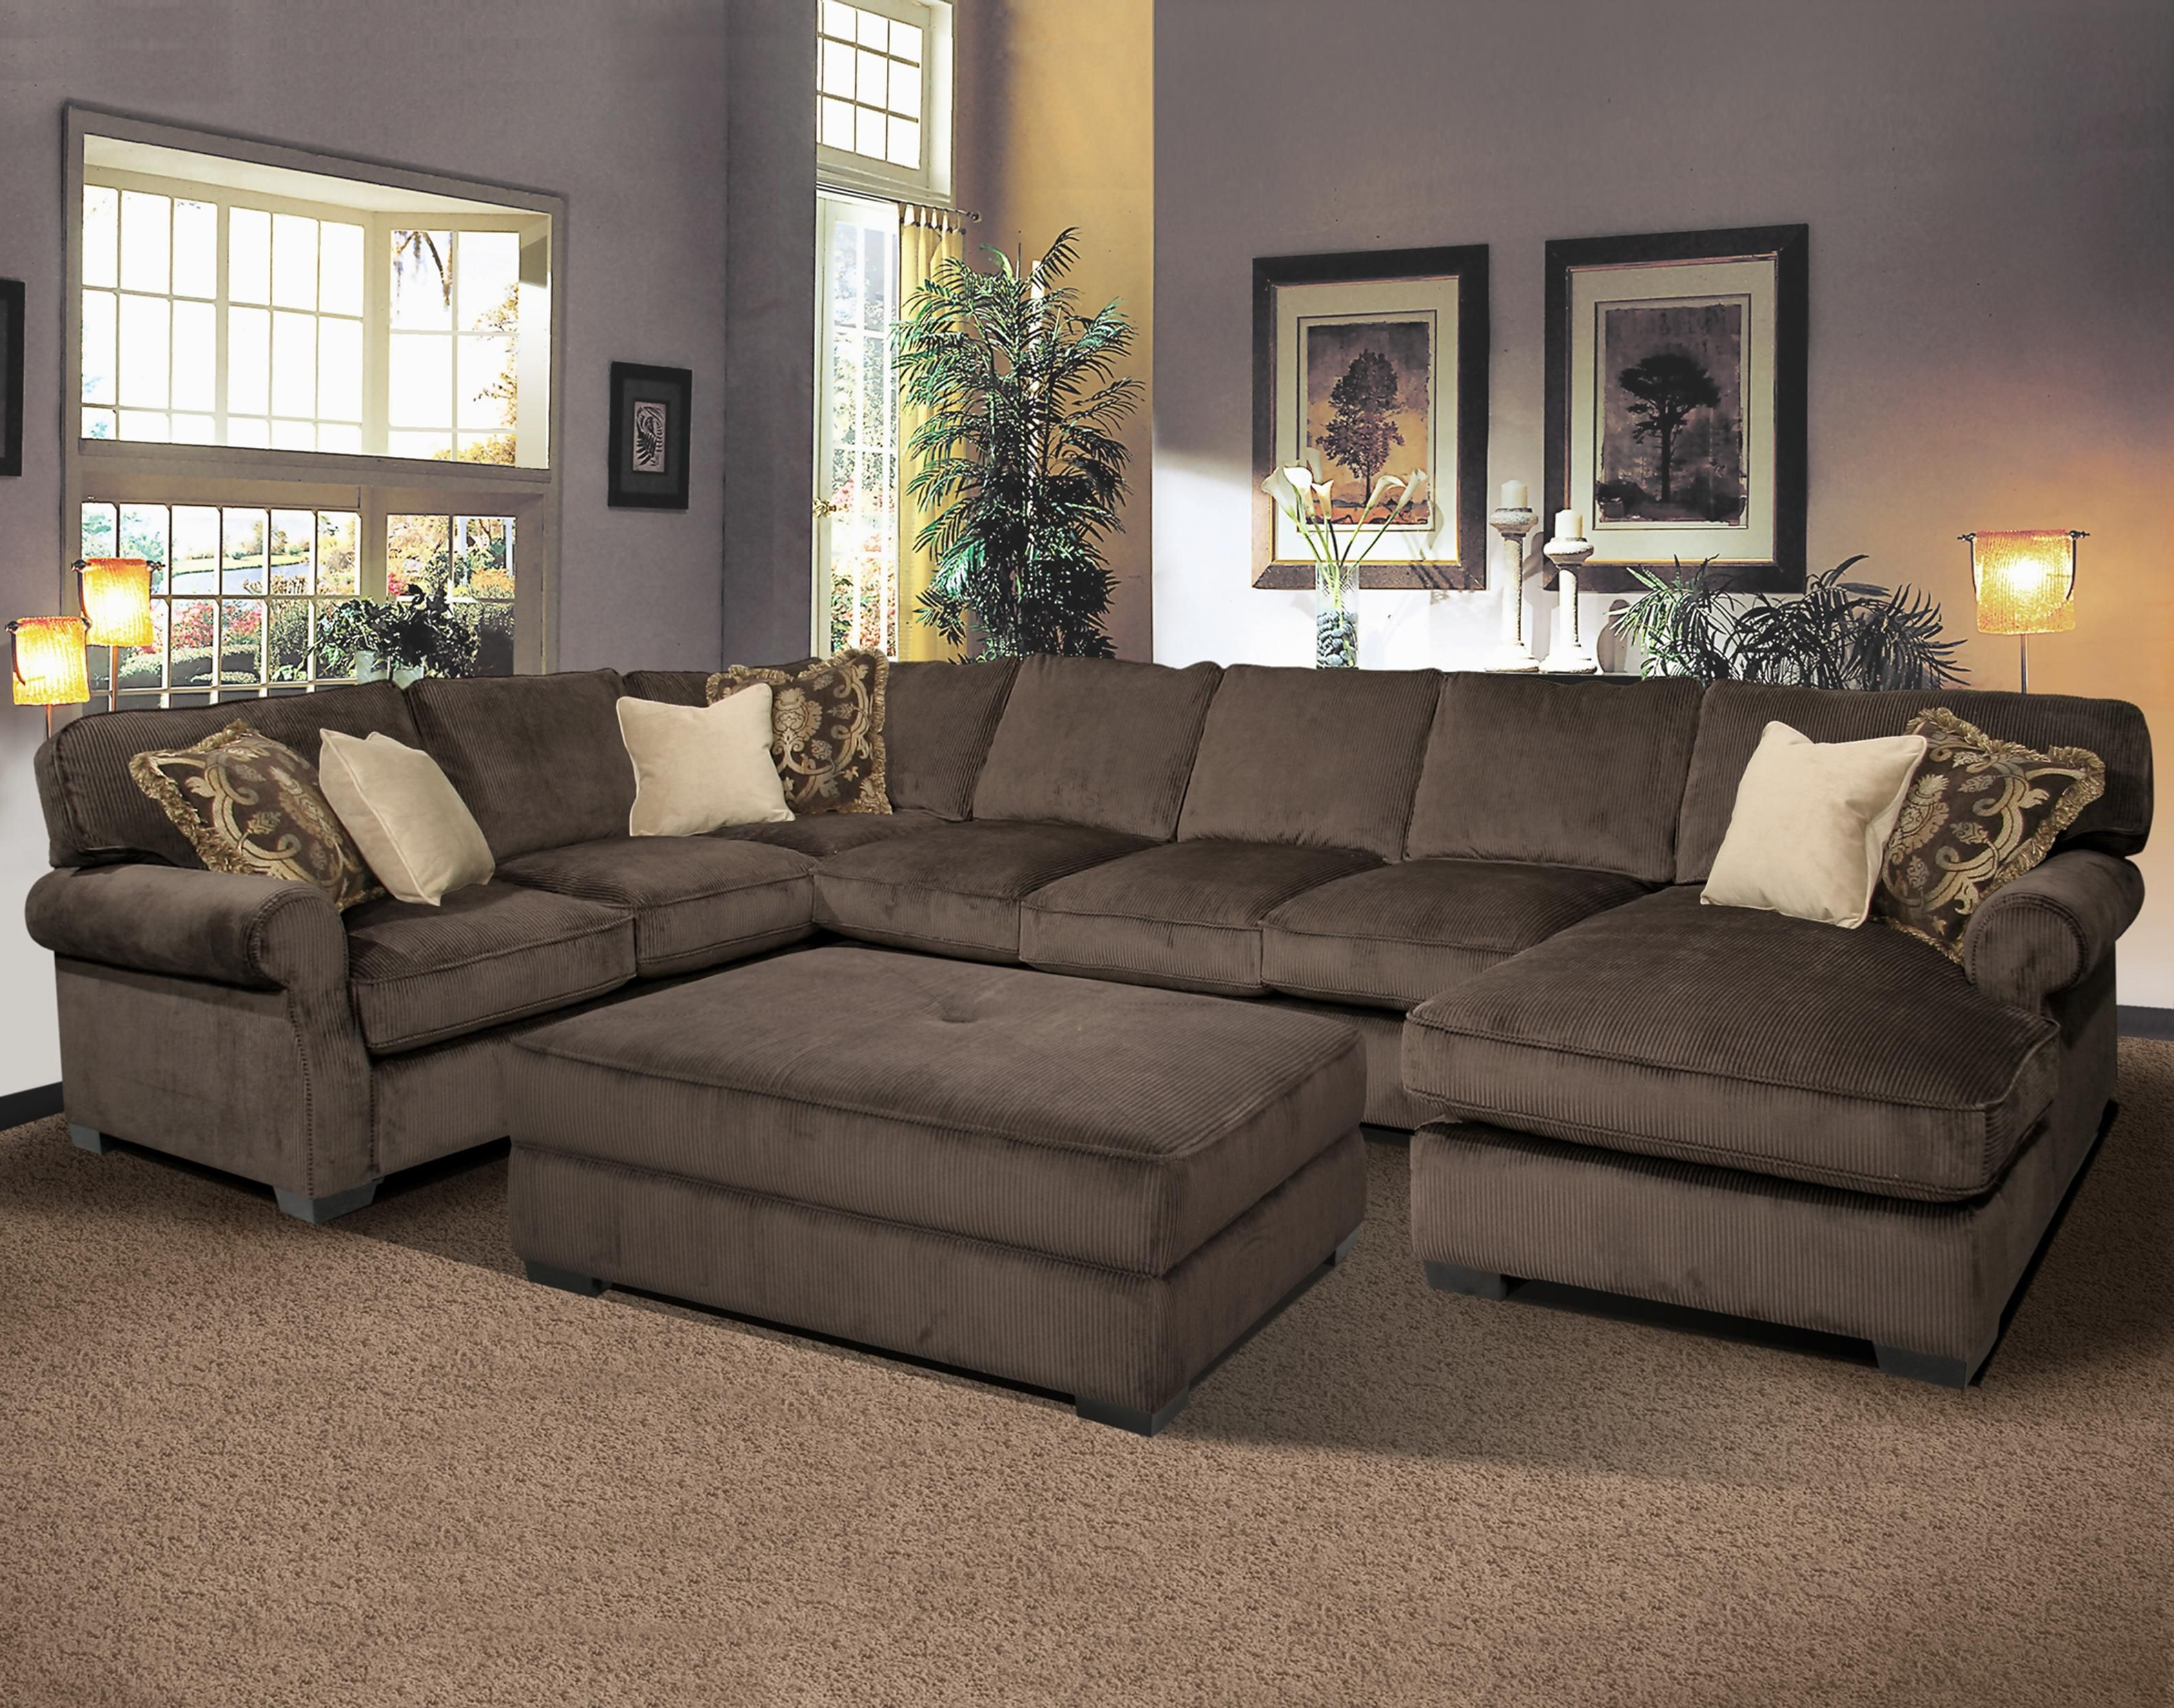 Grand Island Oversized Cocktail Ottoman For Sectional Sofa With Most Up To Date Sectional Sofas With Oversized Ottoman (View 6 of 20)